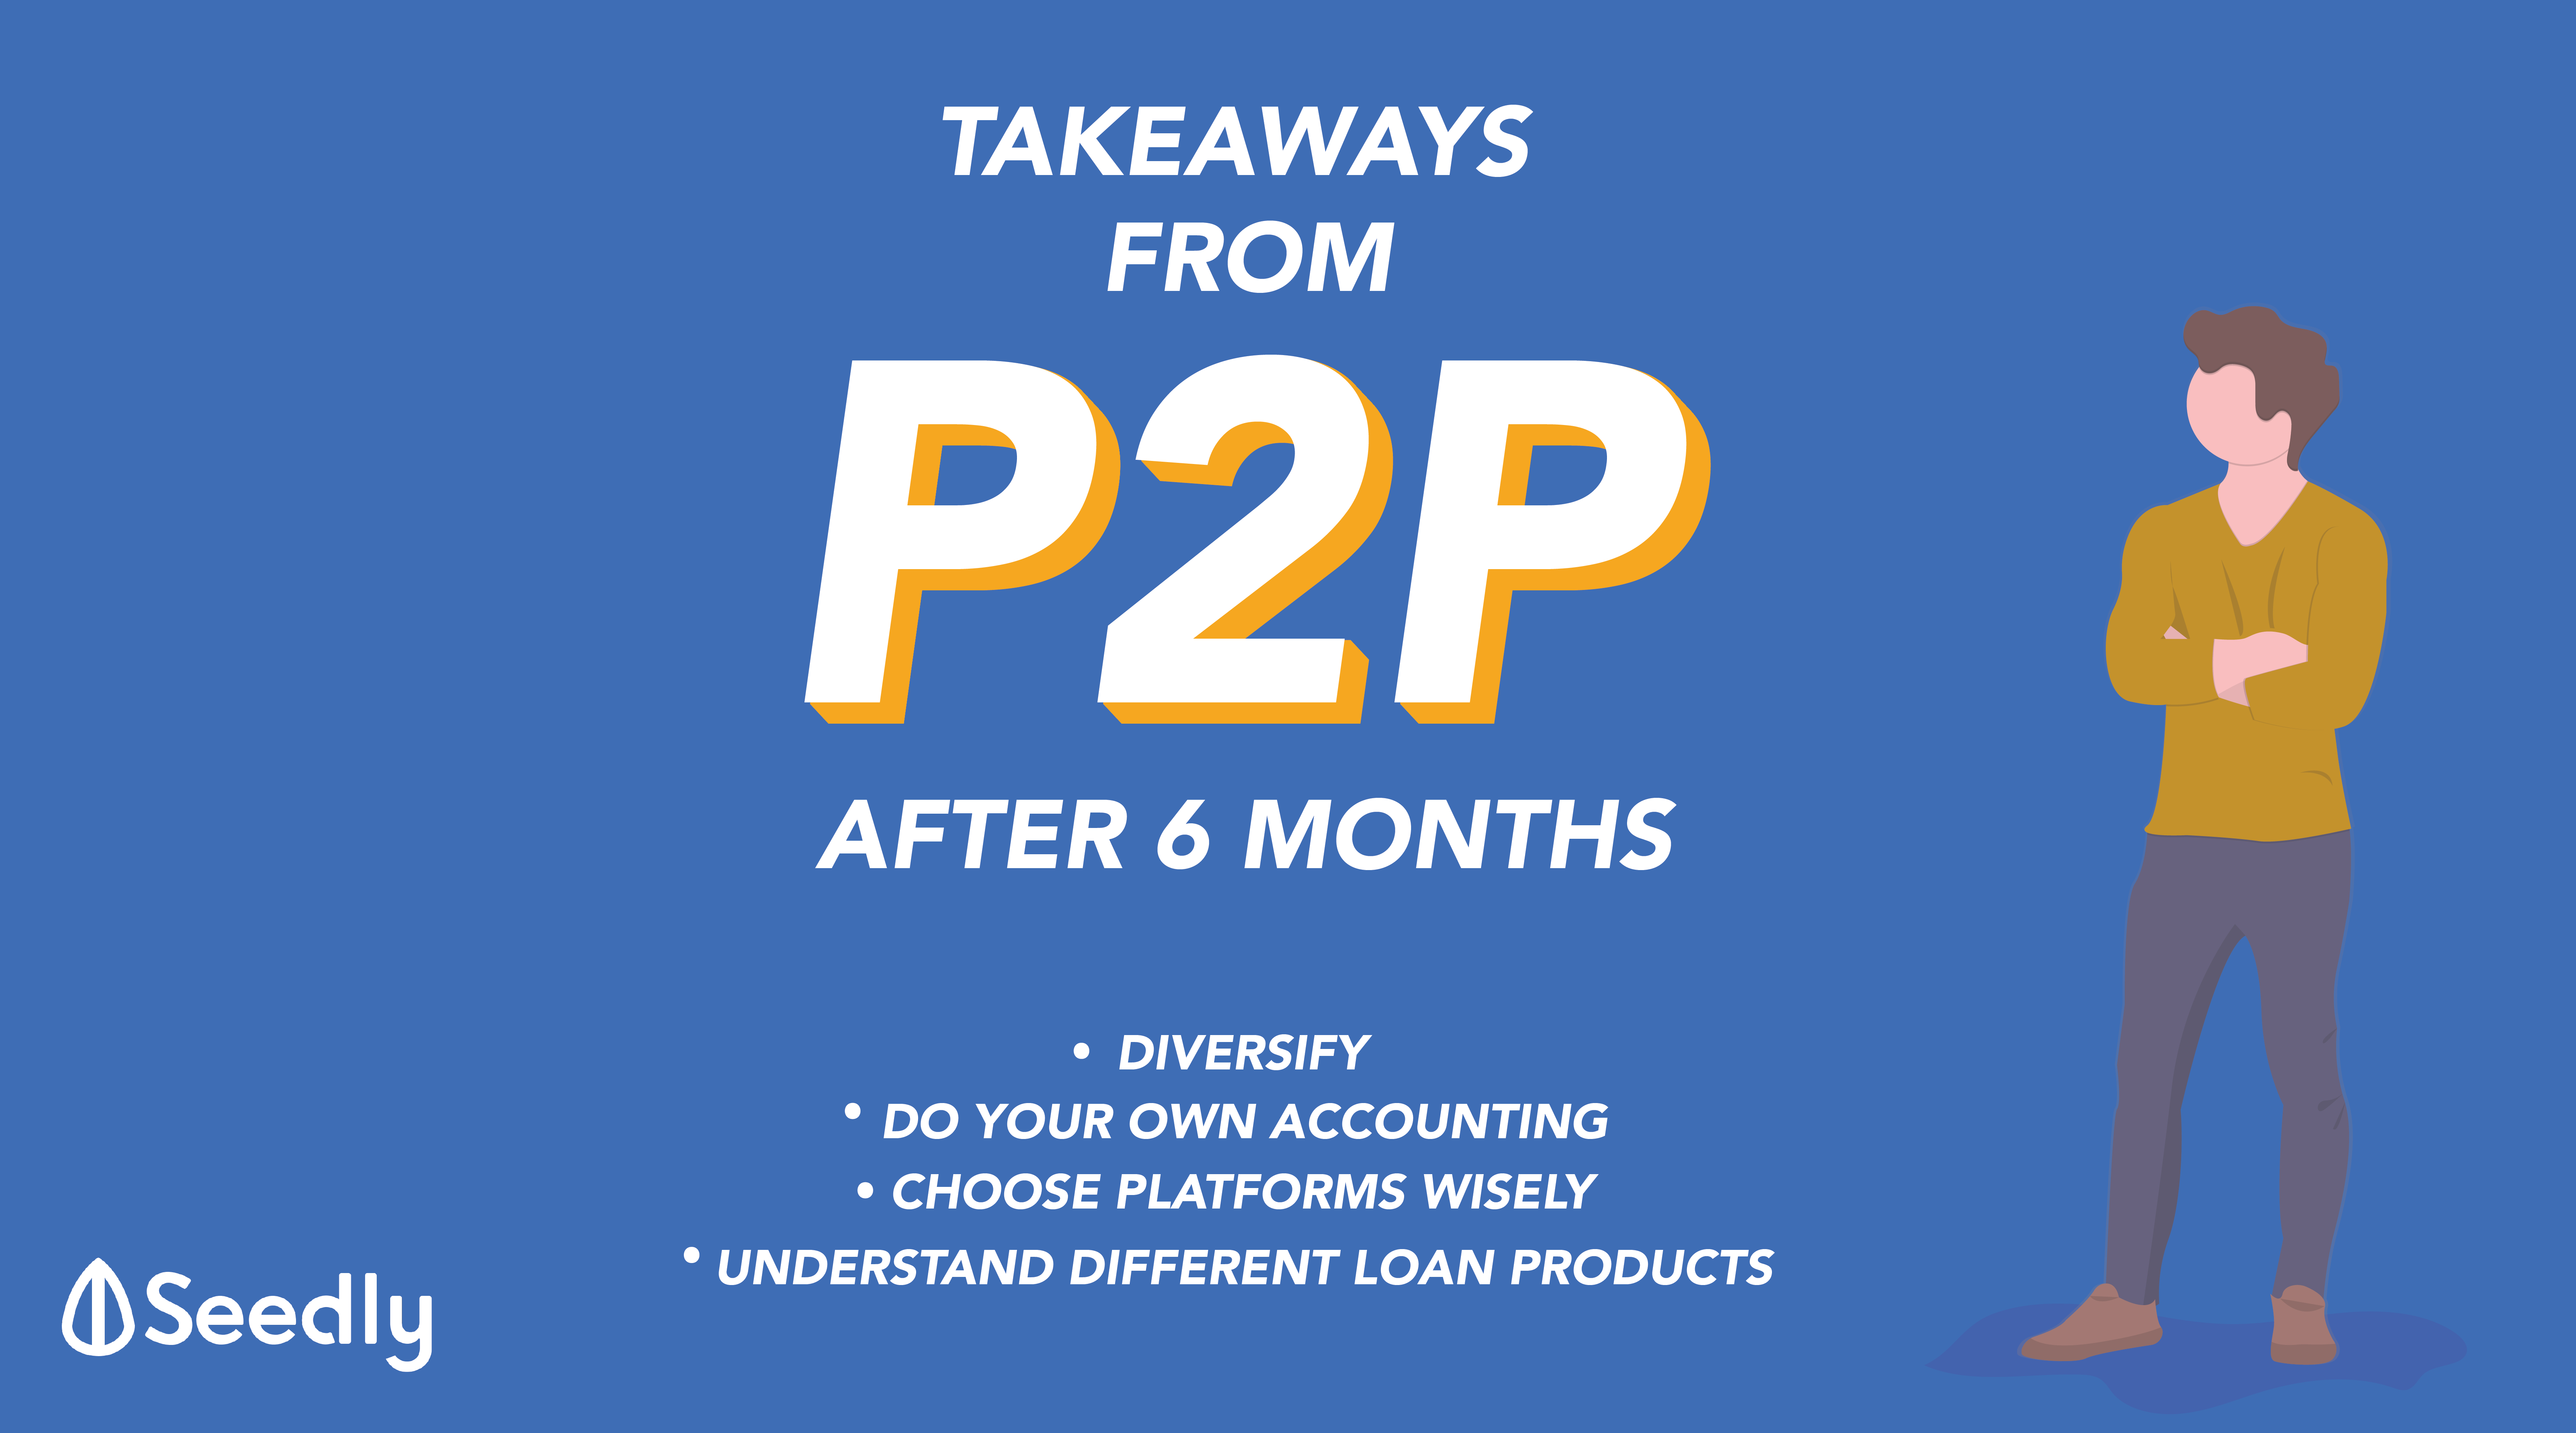 P2P Lending Review: Takeaways After 6 Months